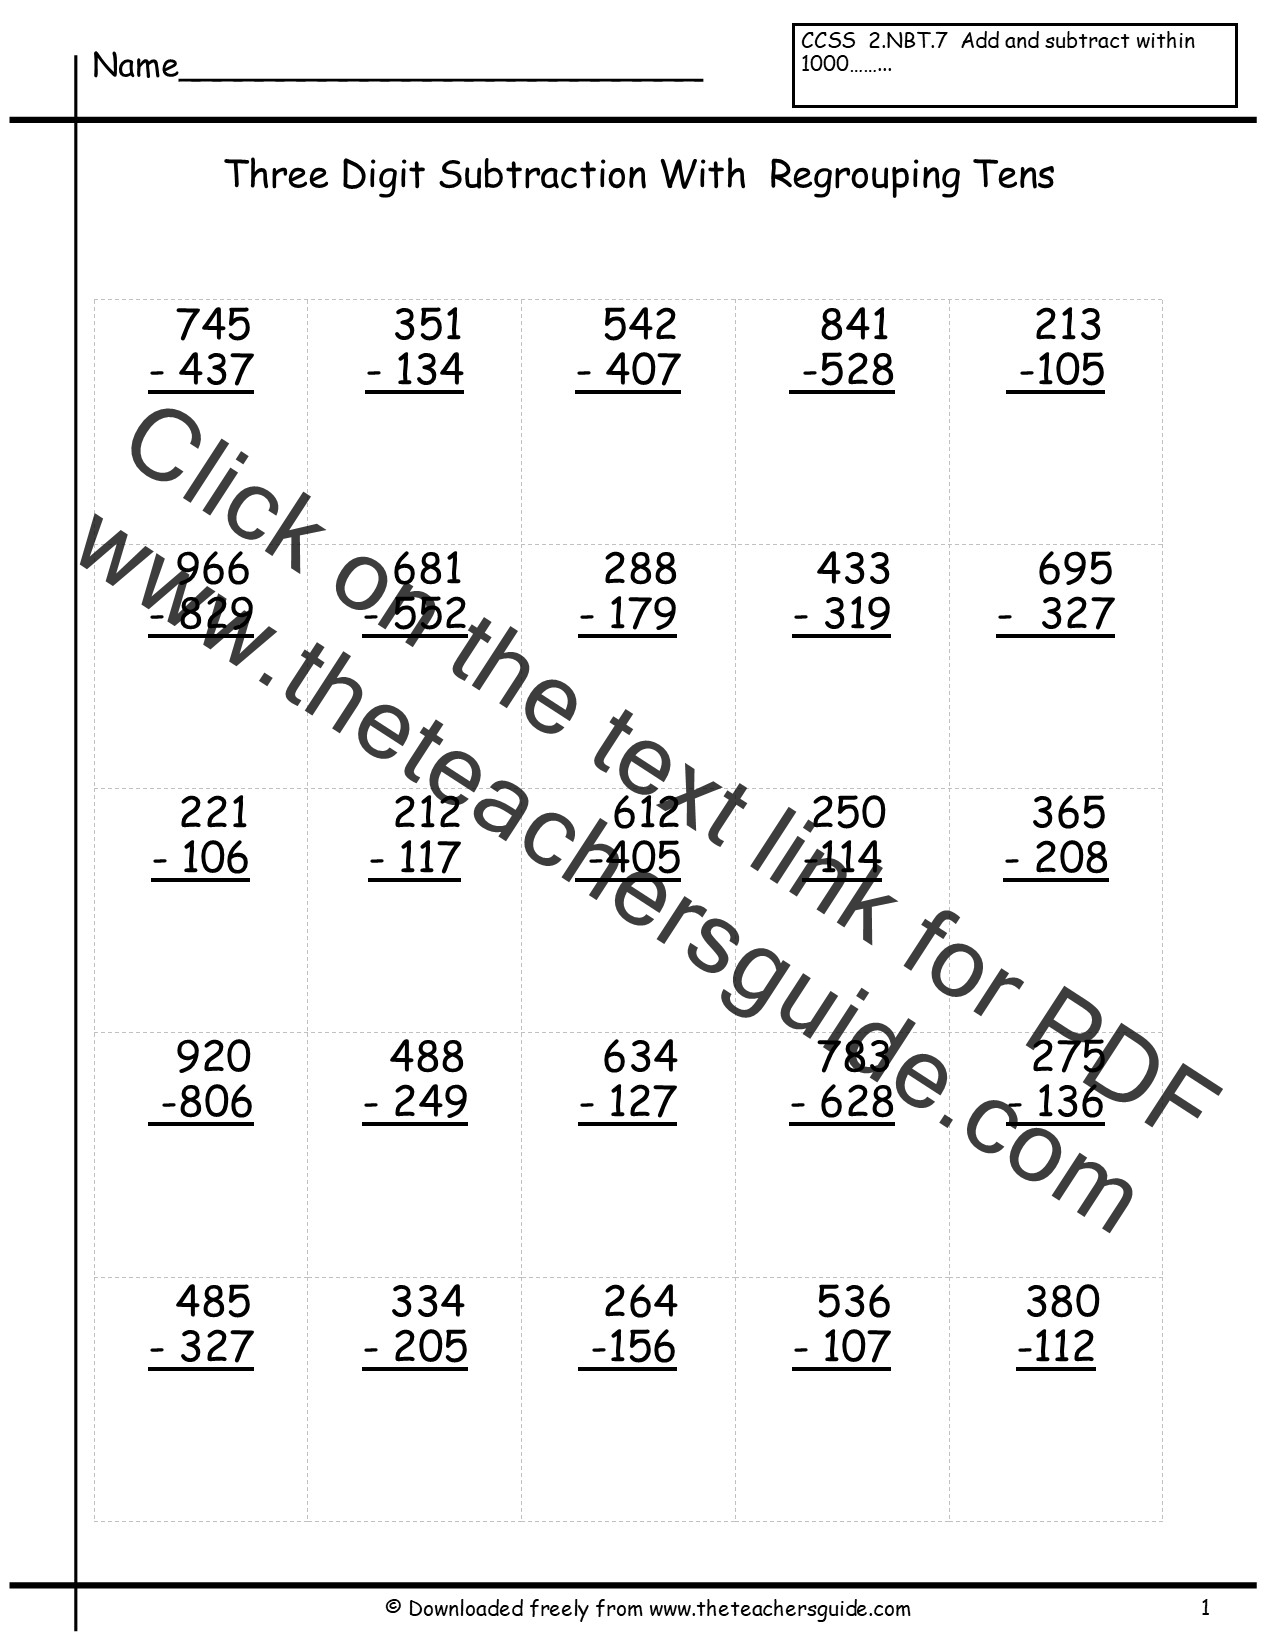 Three Digit Subtraction Worksheets From The Teacher S Guide